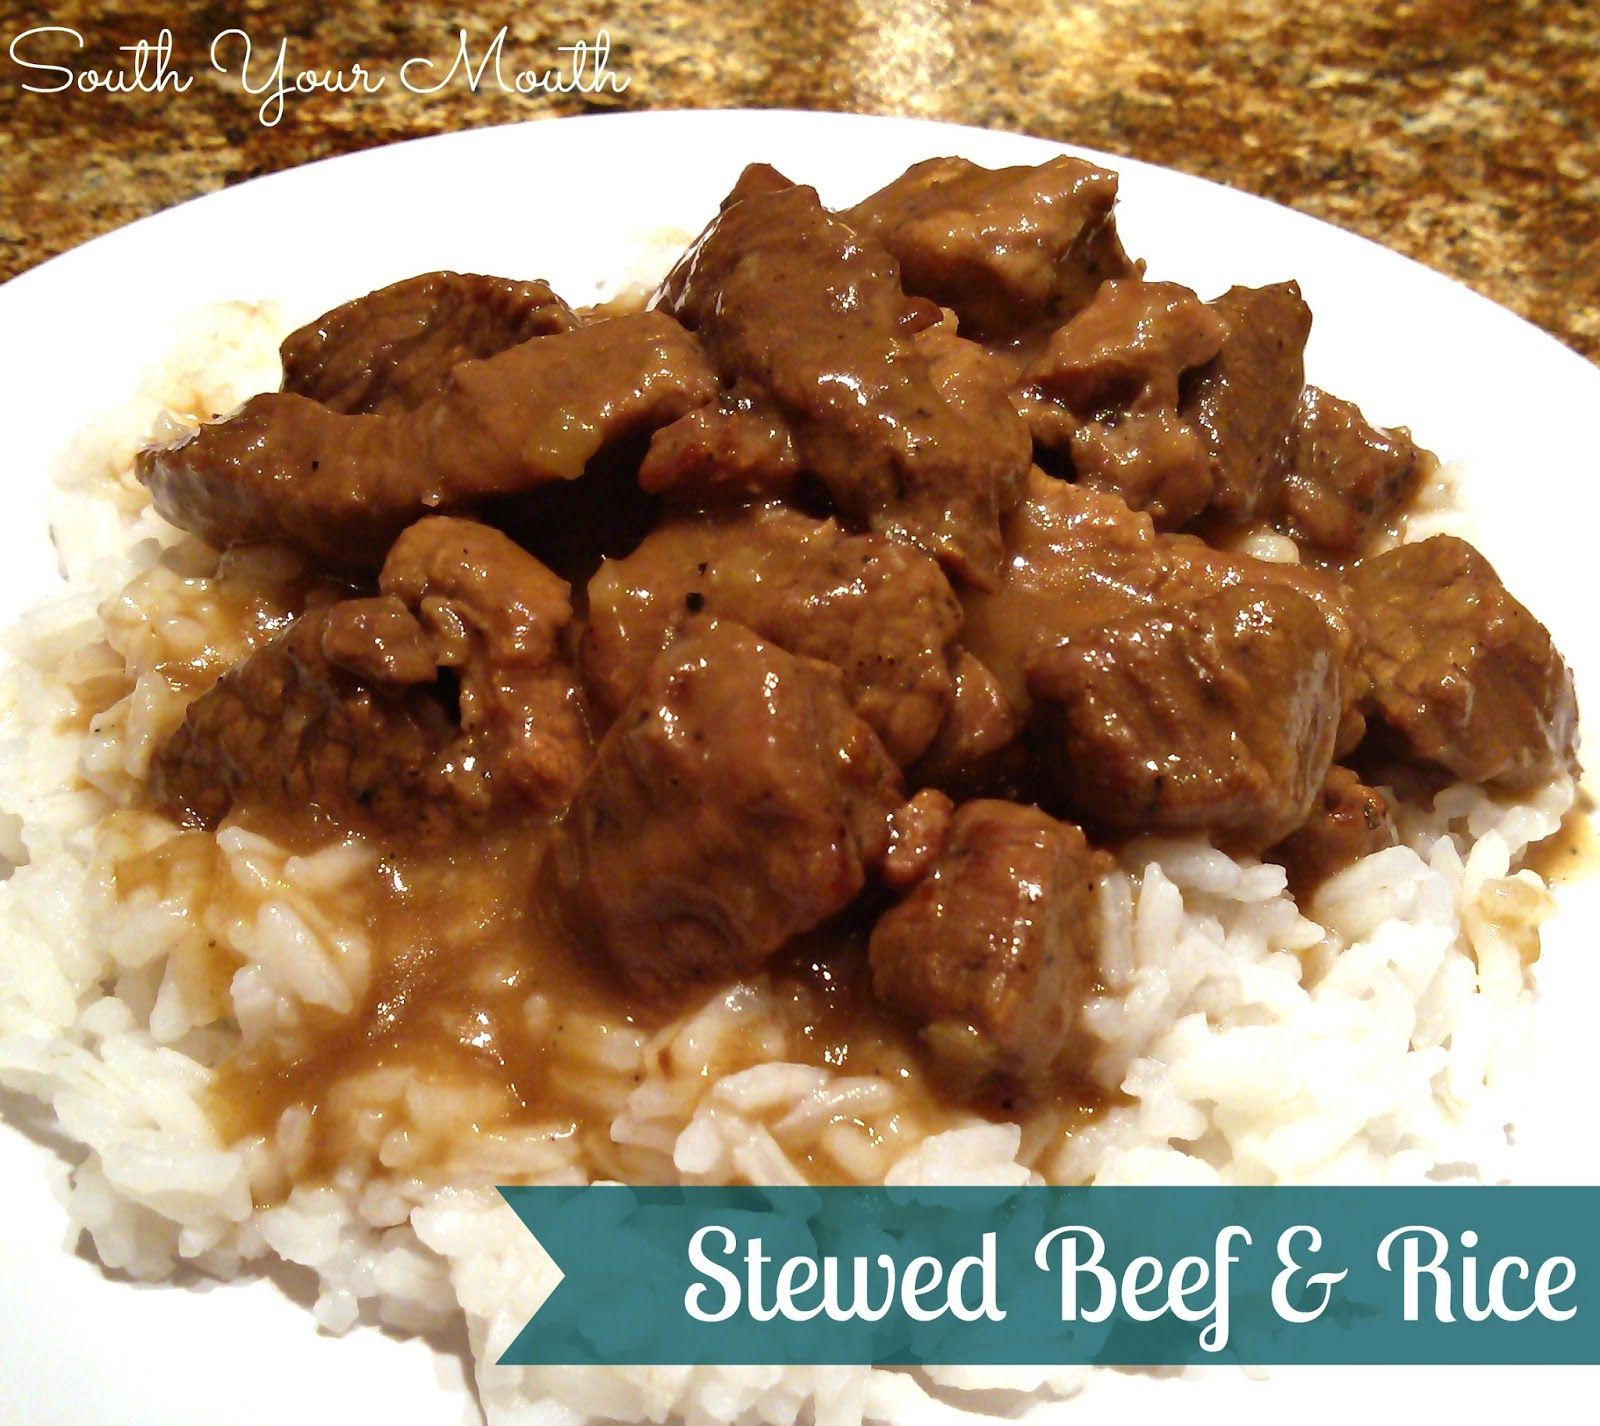 South Your Mouth Stewed Beef Rice Beef Tip Recipes Beef Tips And Gravy Stew Meat Recipes